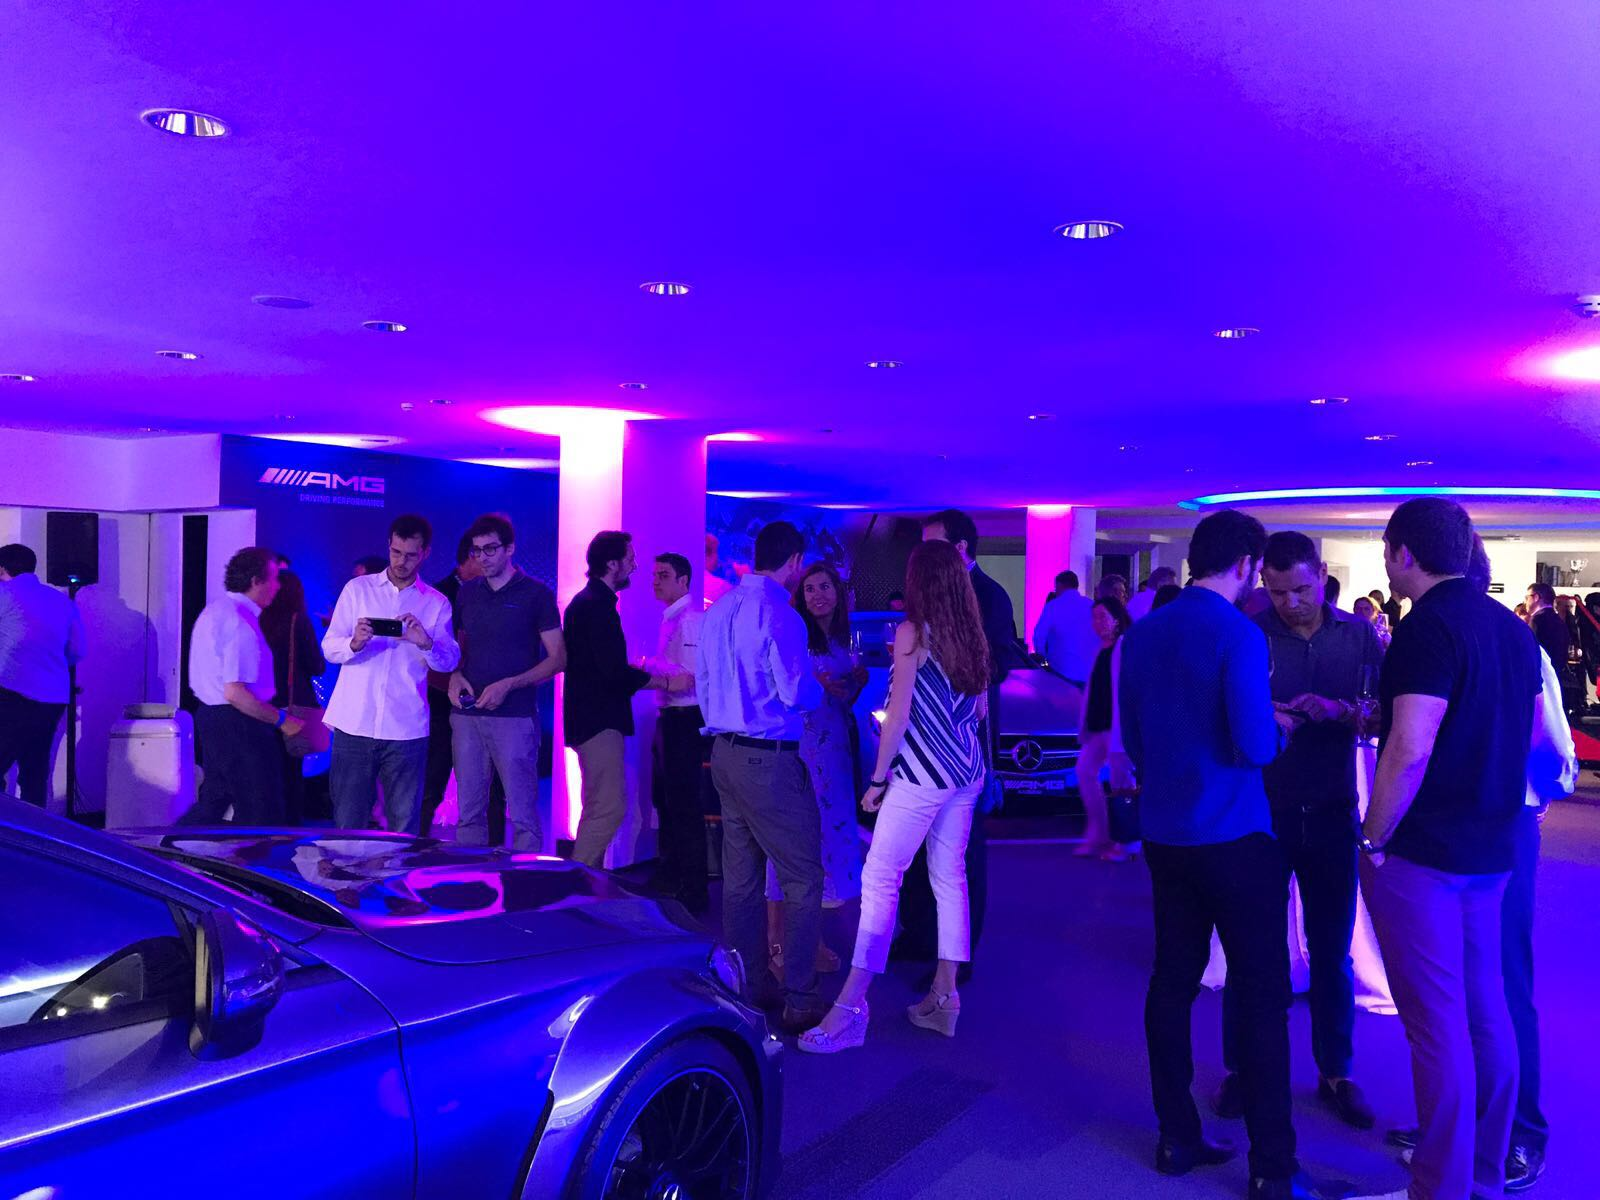 EVENTOS: GOURMET – JUBANY EVENTS – Presentació club The One de Mercedes-Benz